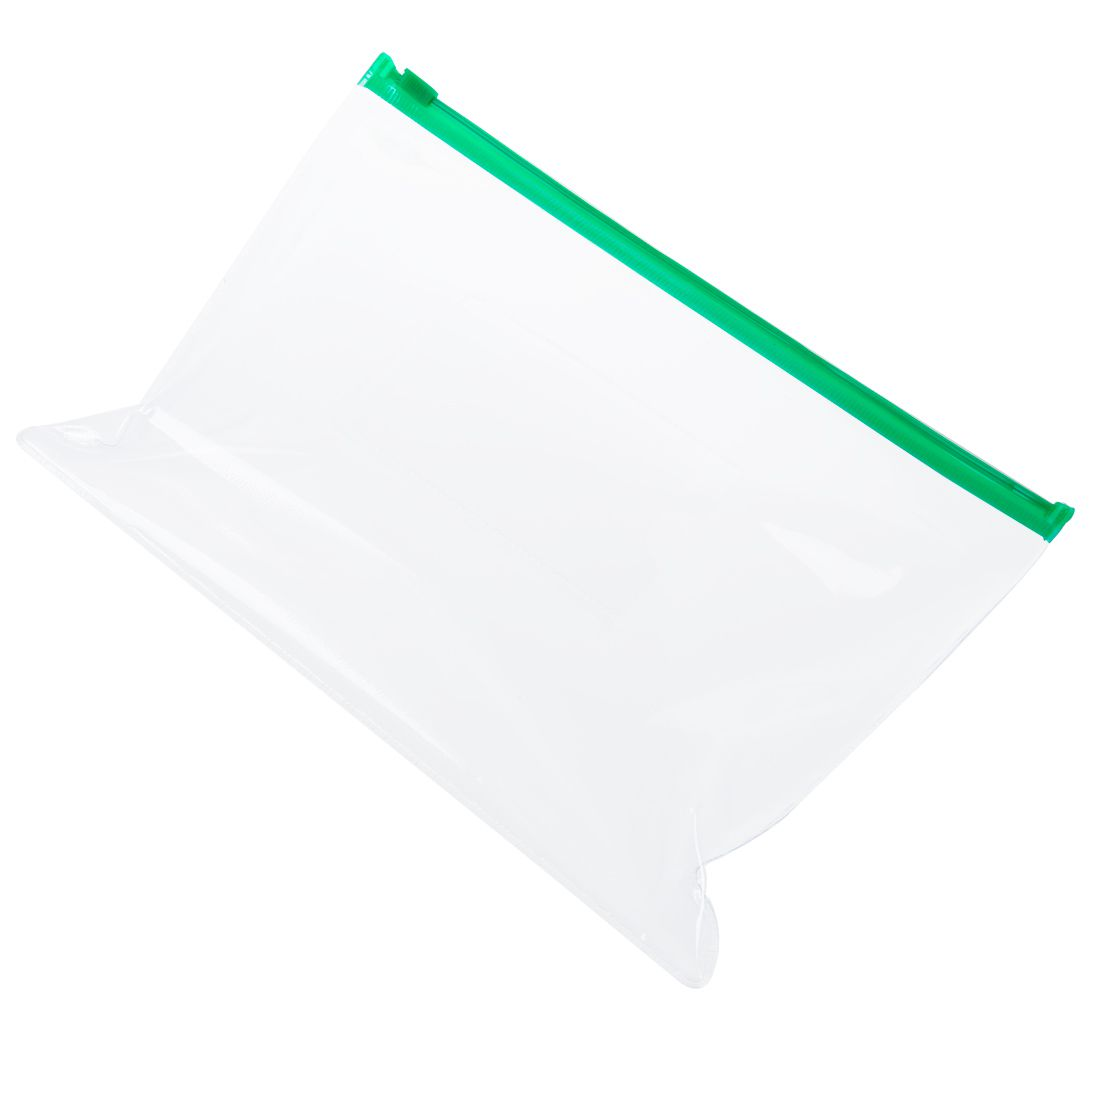 fd13be4abdb1 best ziplock folder list and get free shipping - ji8hl5nk